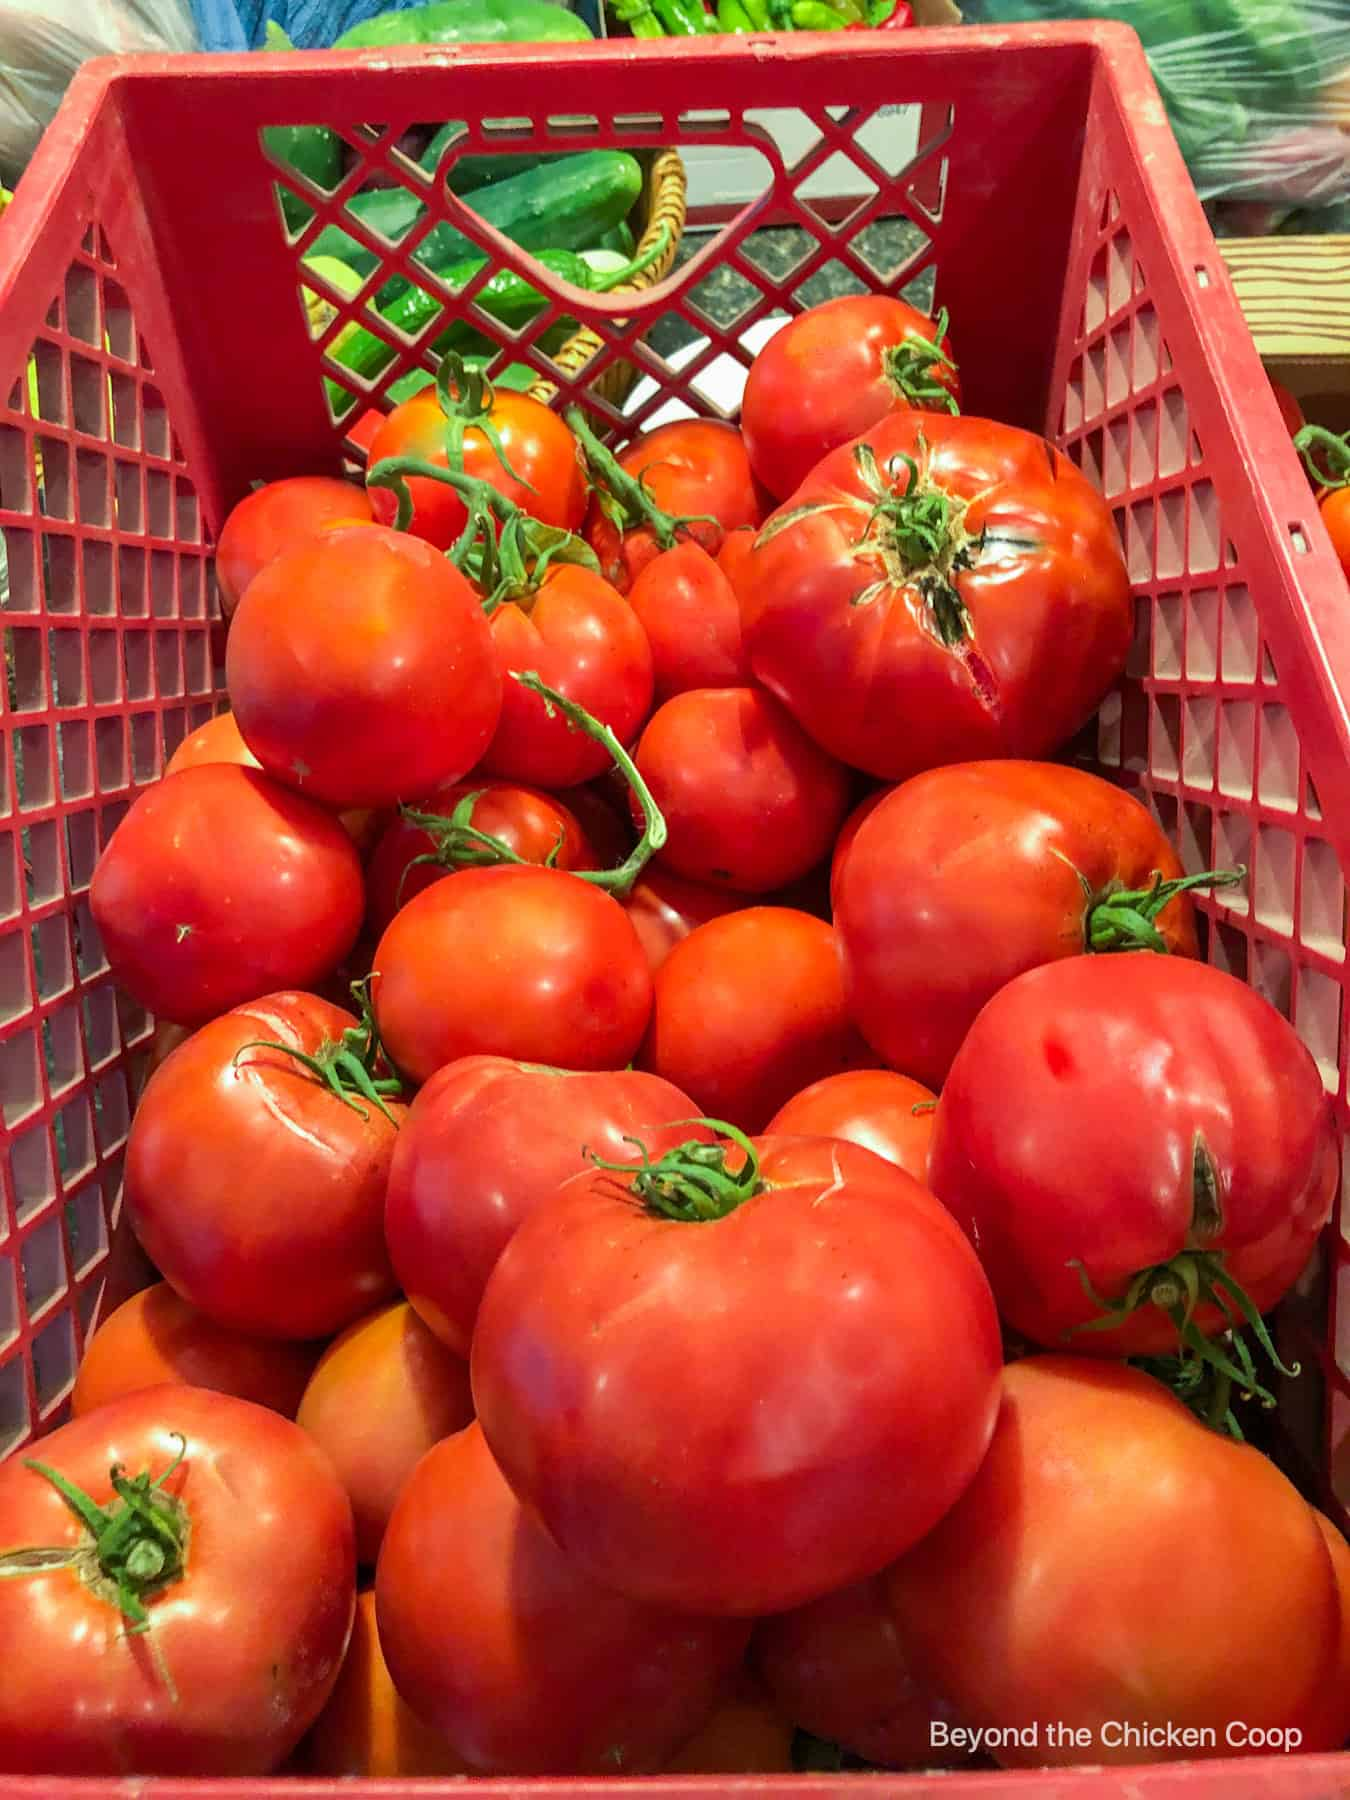 A crate full of fresh tomatoes.